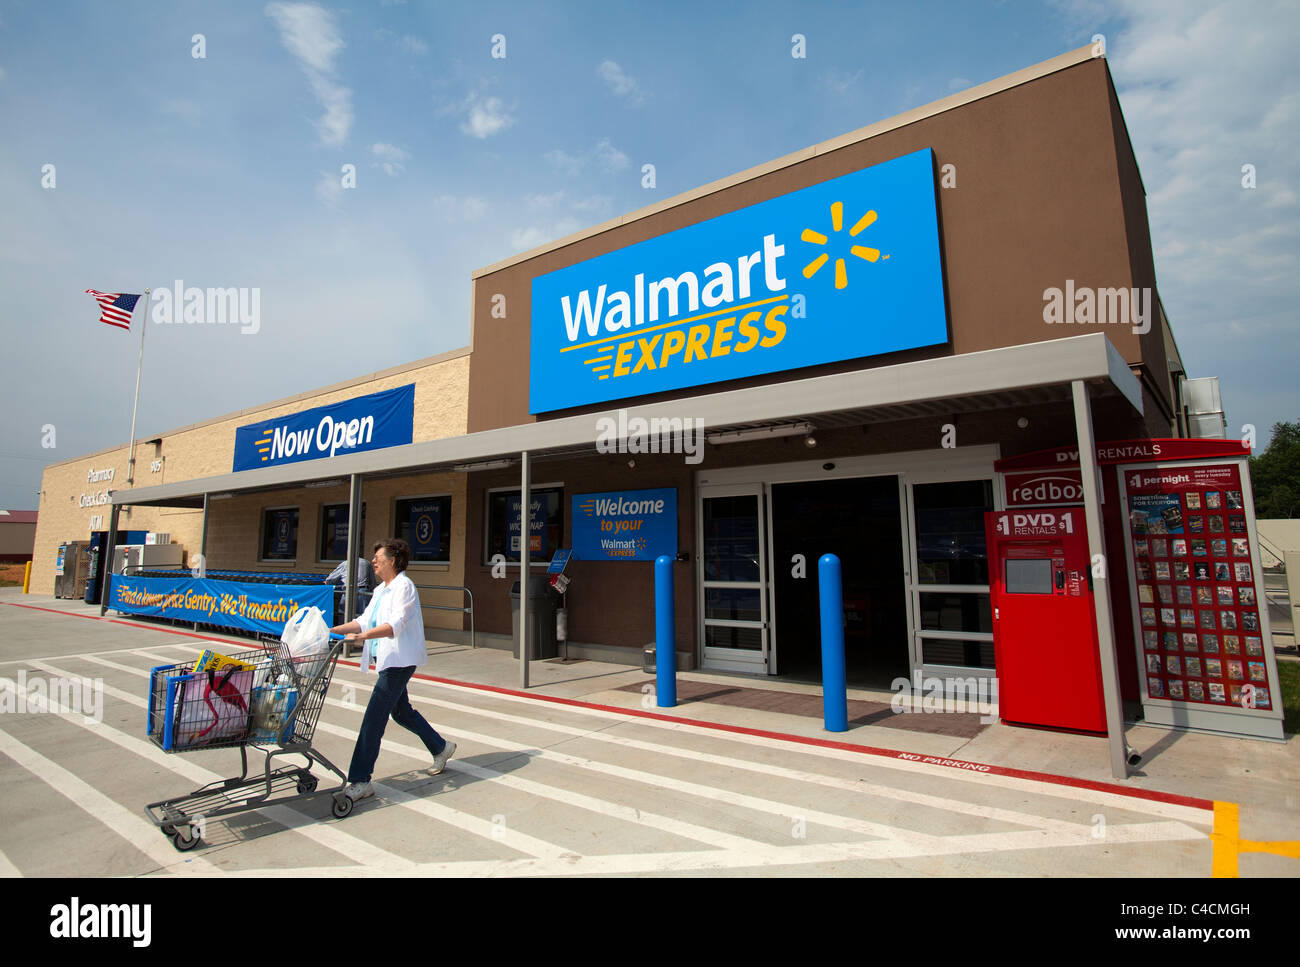 Express stock options walmart